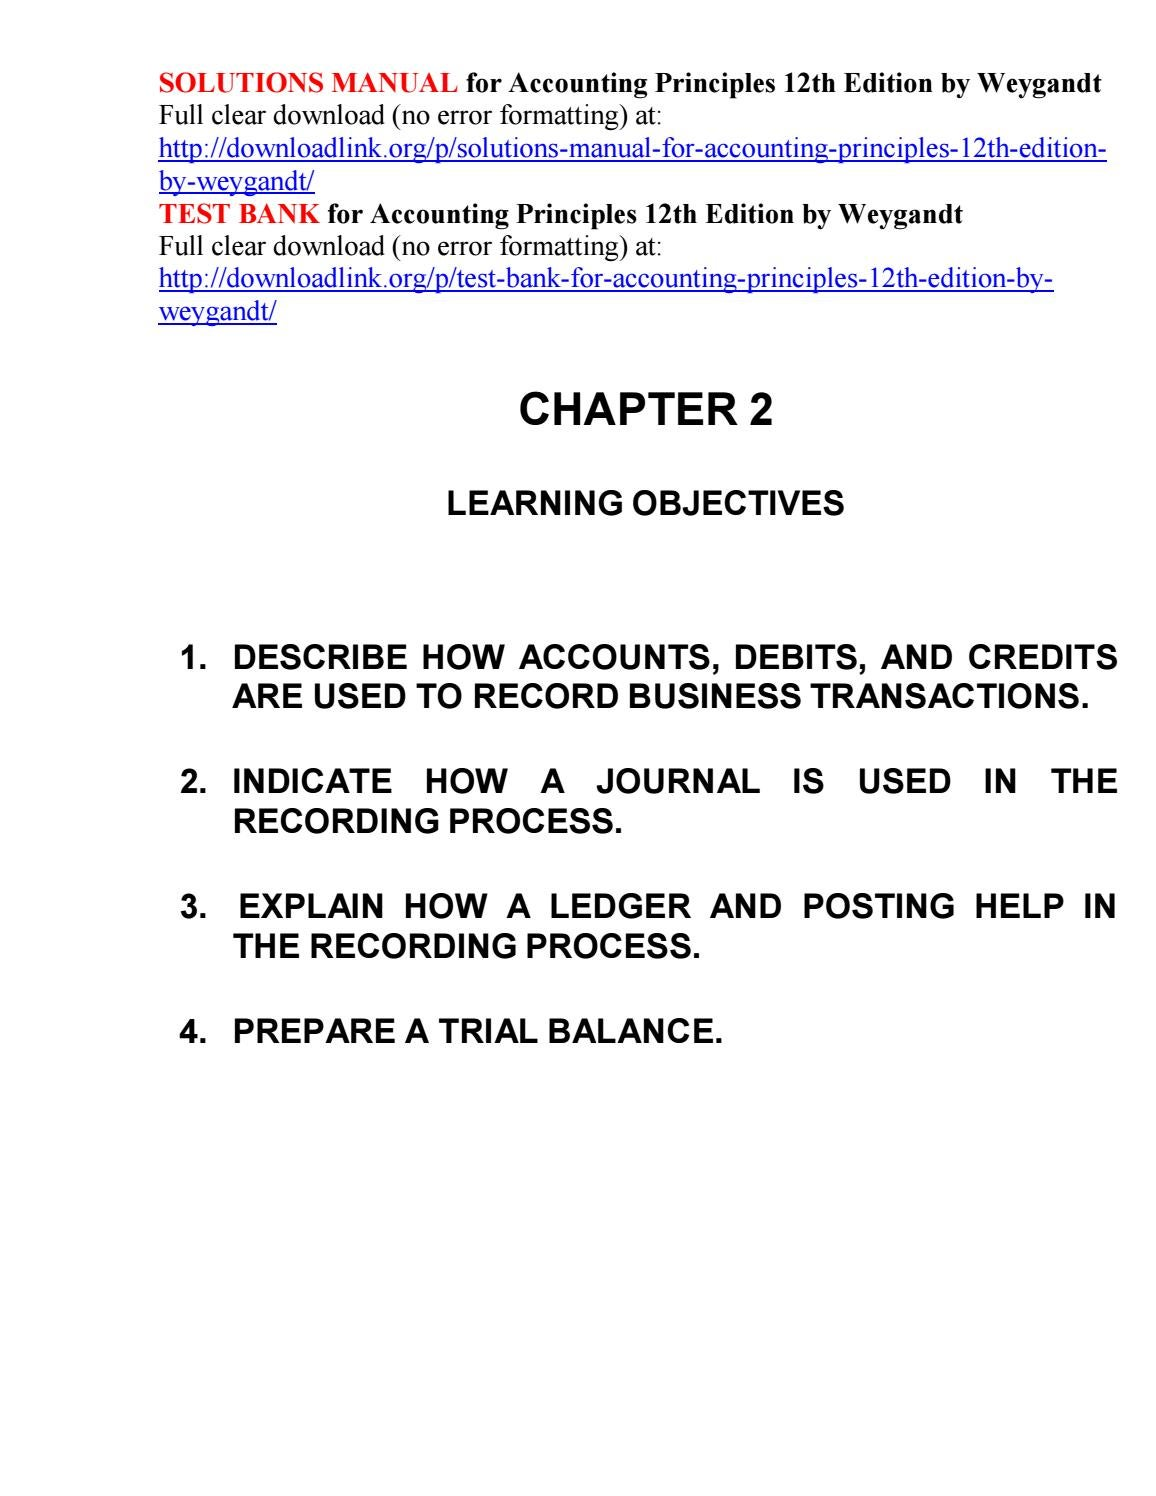 Solutions Manual for Accounting Principles 12th Edition by Weygandt by  Kris94786 - issuu